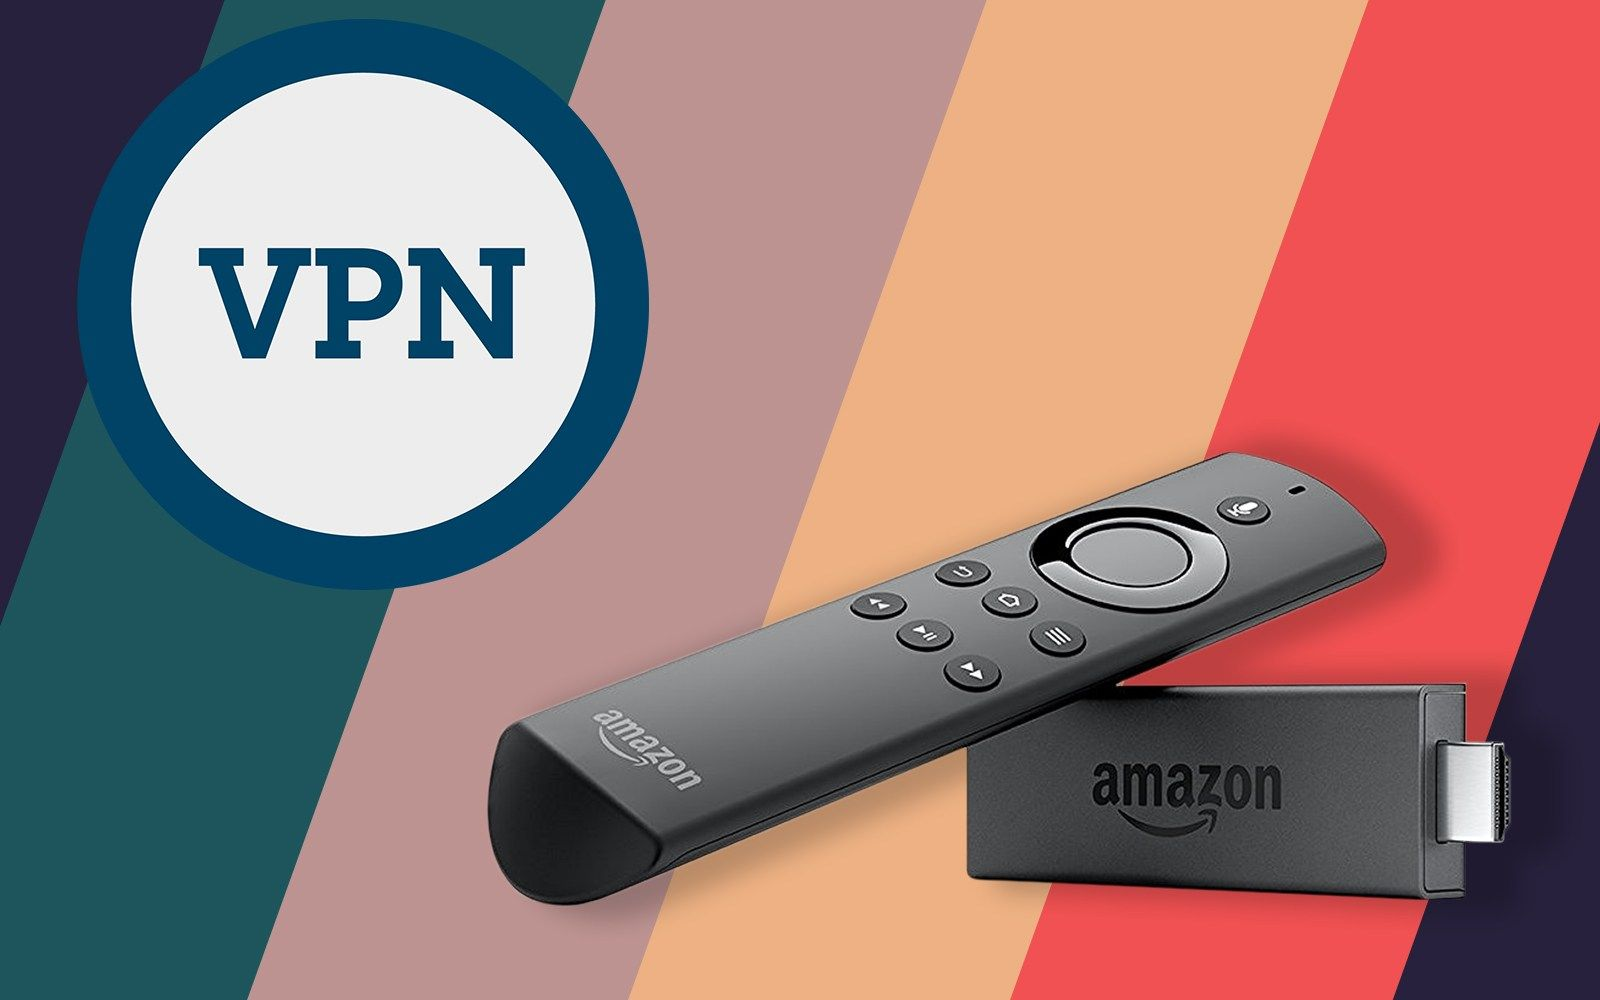 422a0709c0ecfa63458df7a22d412082 - Why Use A Vpn On Firestick